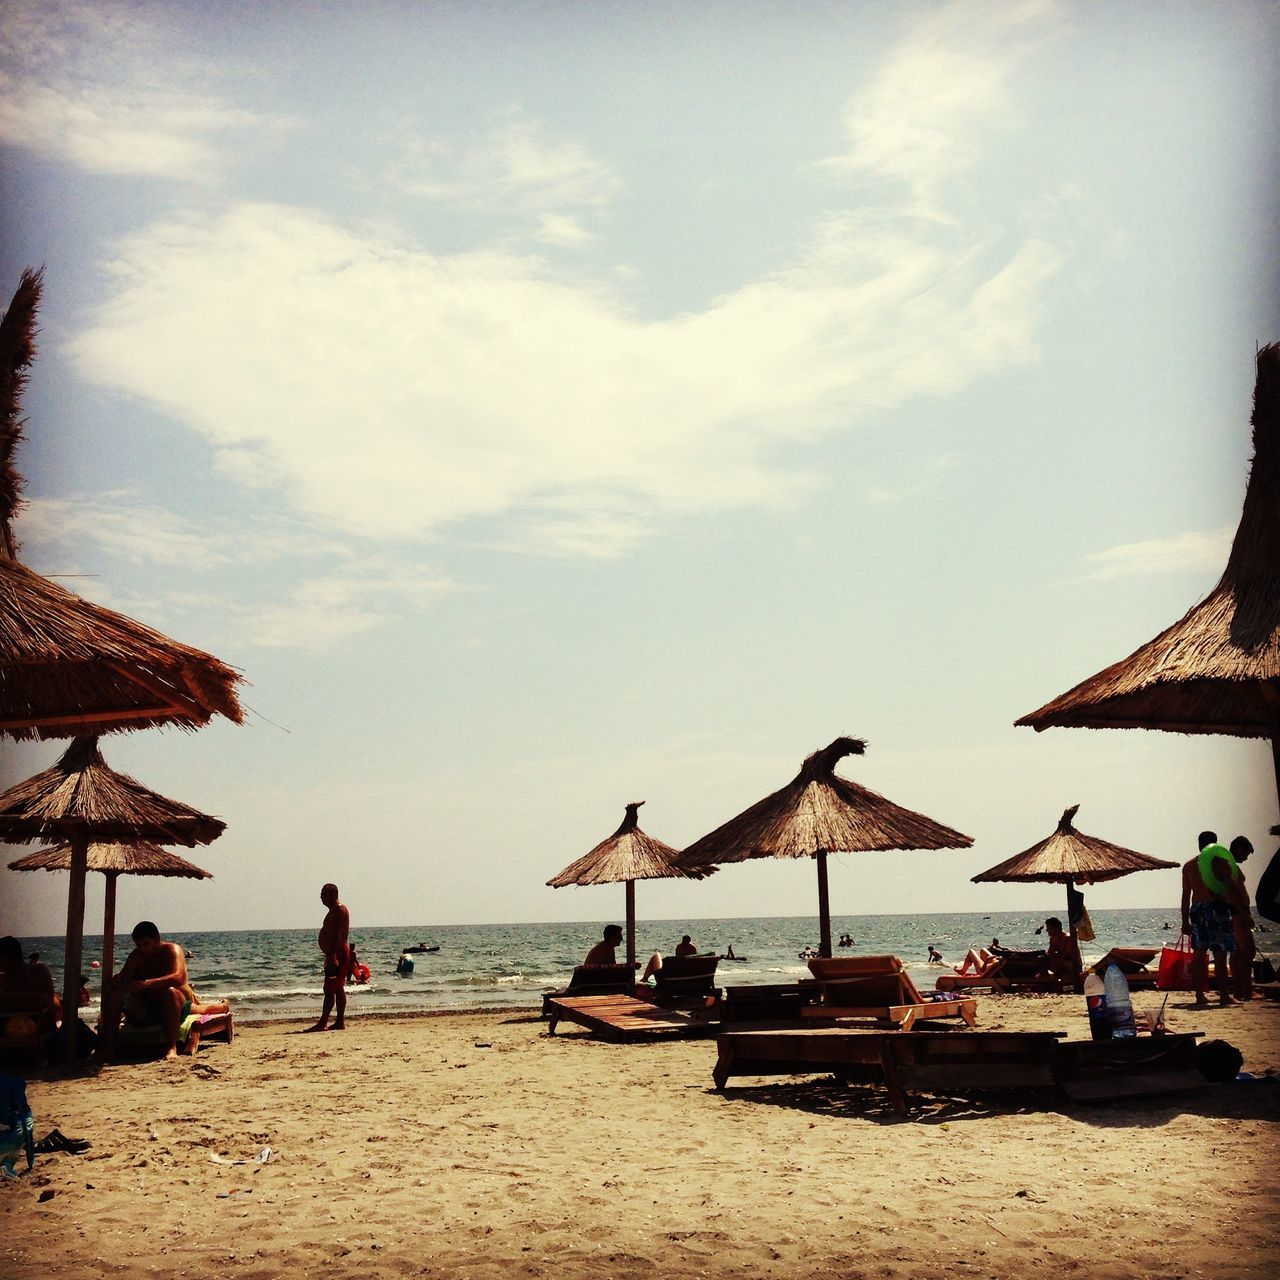 beach, sea, water, beach umbrella, sand, horizon over water, nature, beauty in nature, shore, vacations, sky, tranquility, scenics, tranquil scene, outdoors, cloud - sky, thatched roof, day, summer, real people, men, lifestyles, one person, people